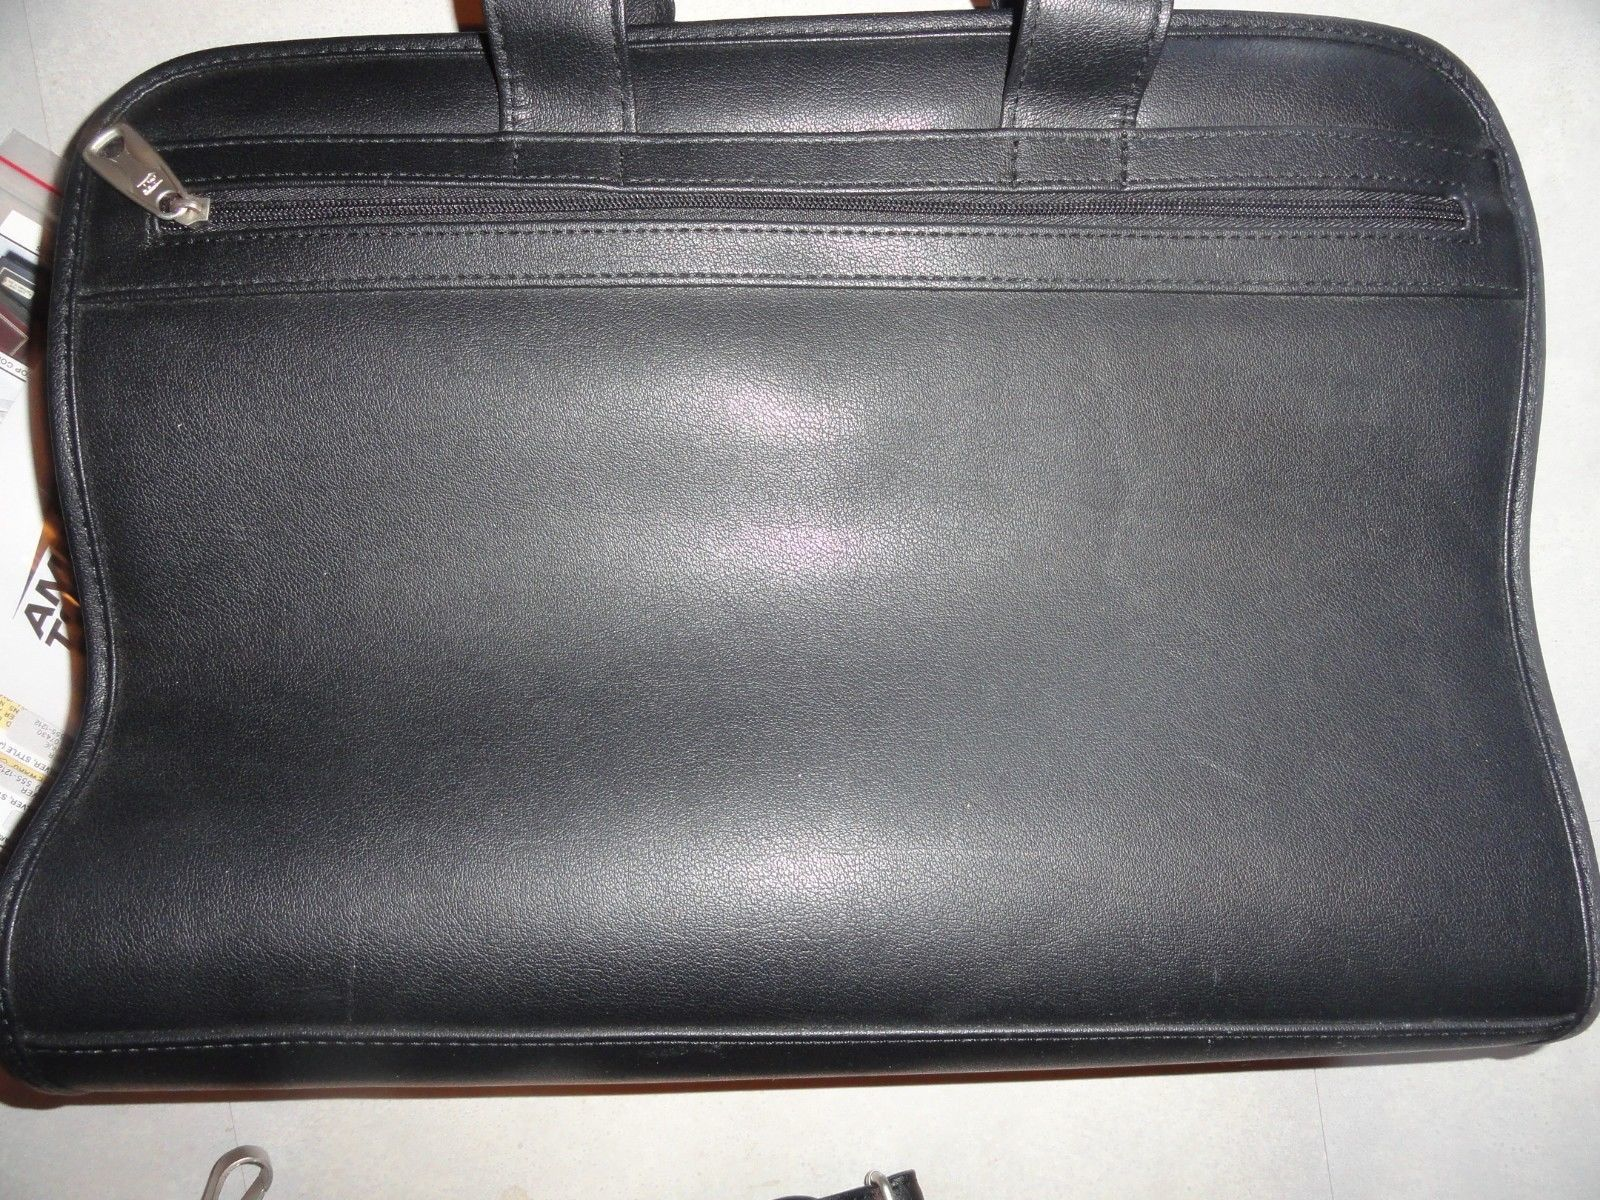 NOS American Tourister Carry-On Travel Bag Luggage Suitcase Black Computer Bag